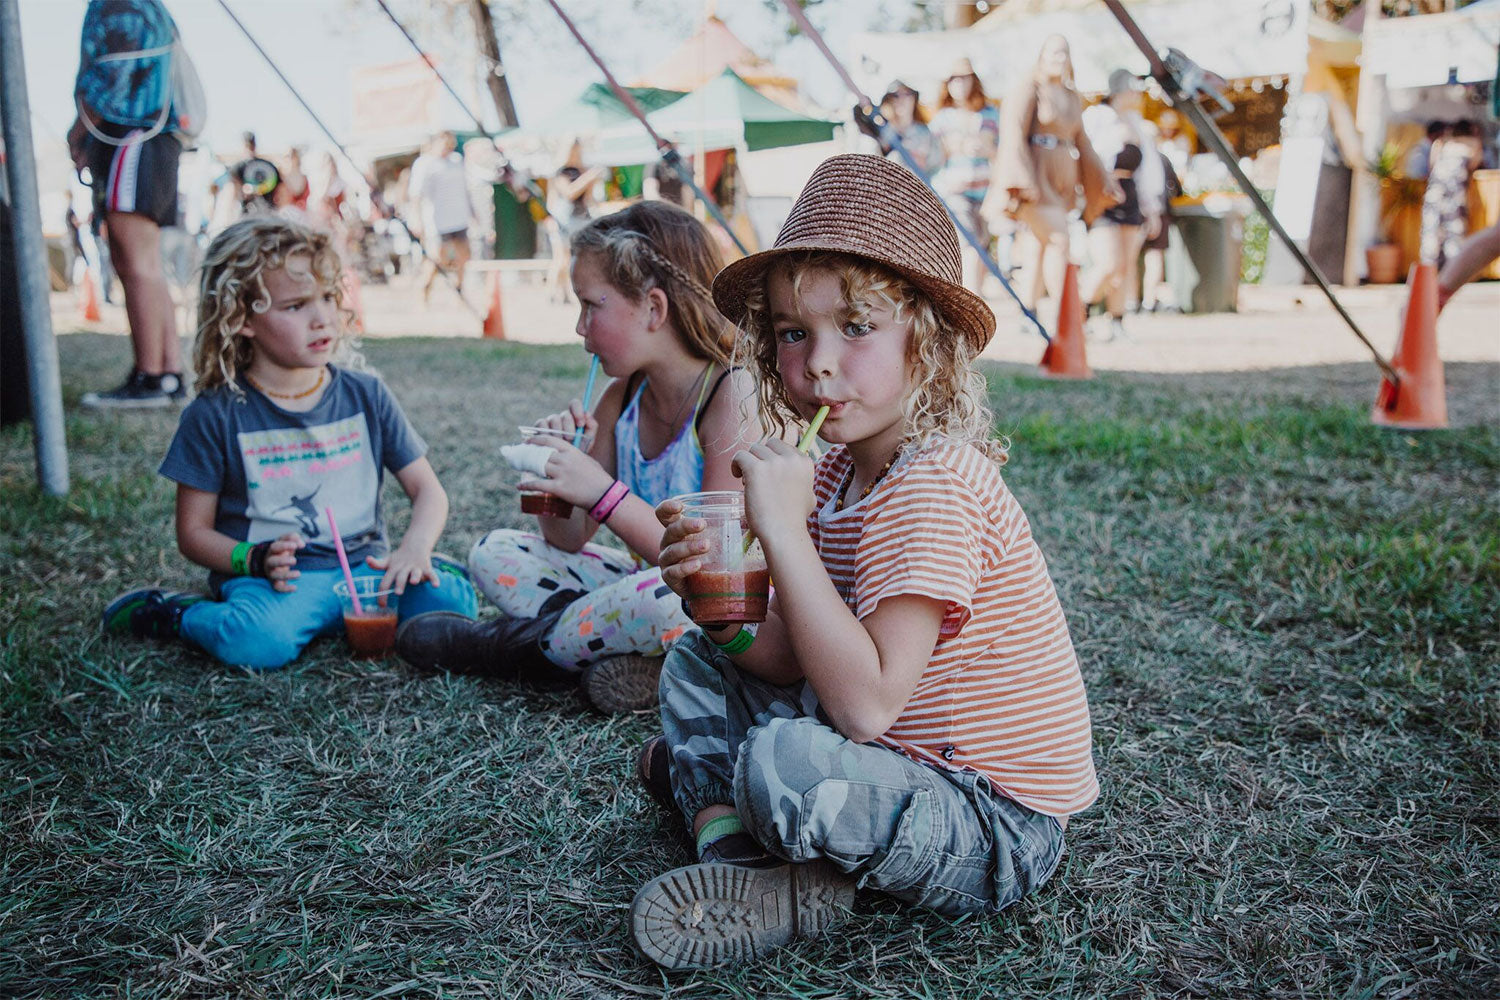 Kids at Splendour